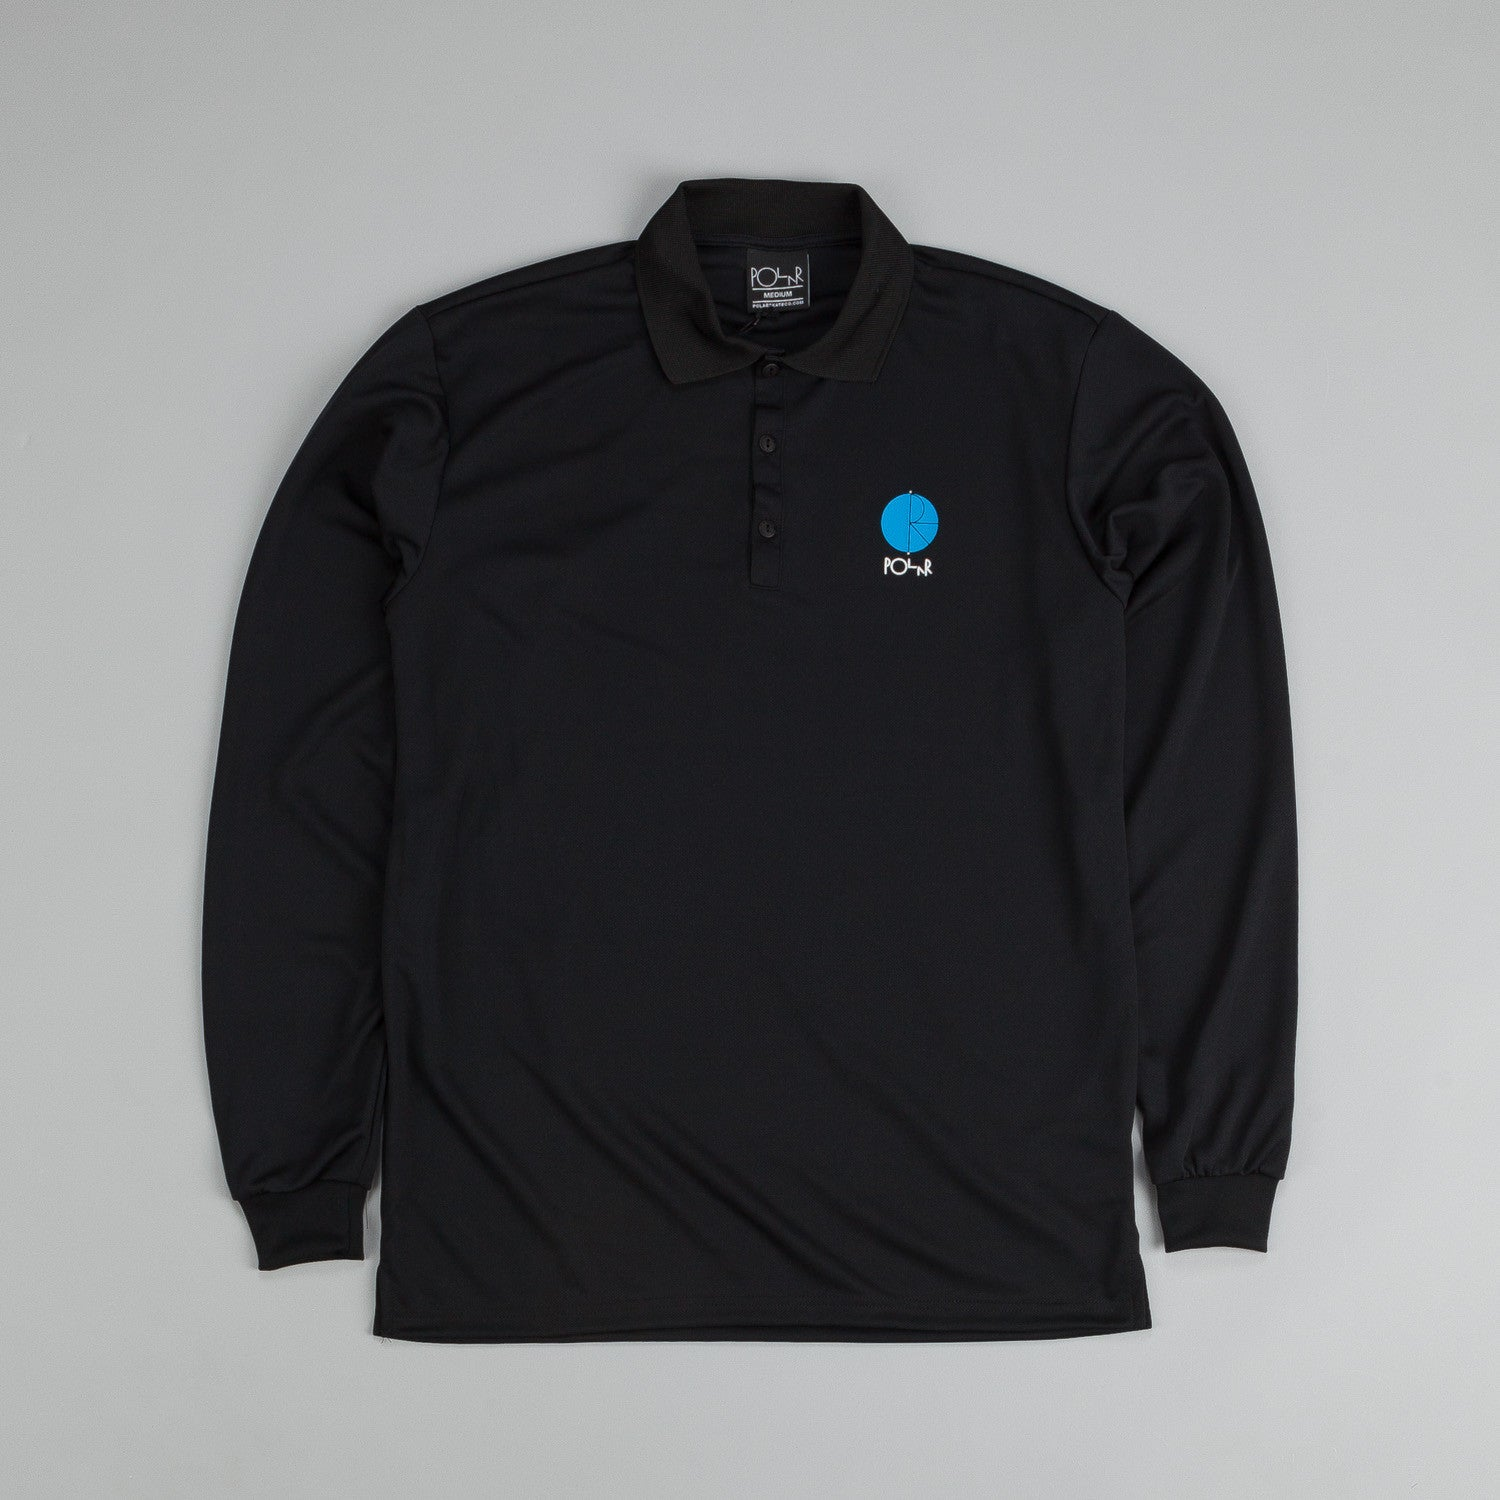 Polar Champion Borg L/S Shirt Black /Blue